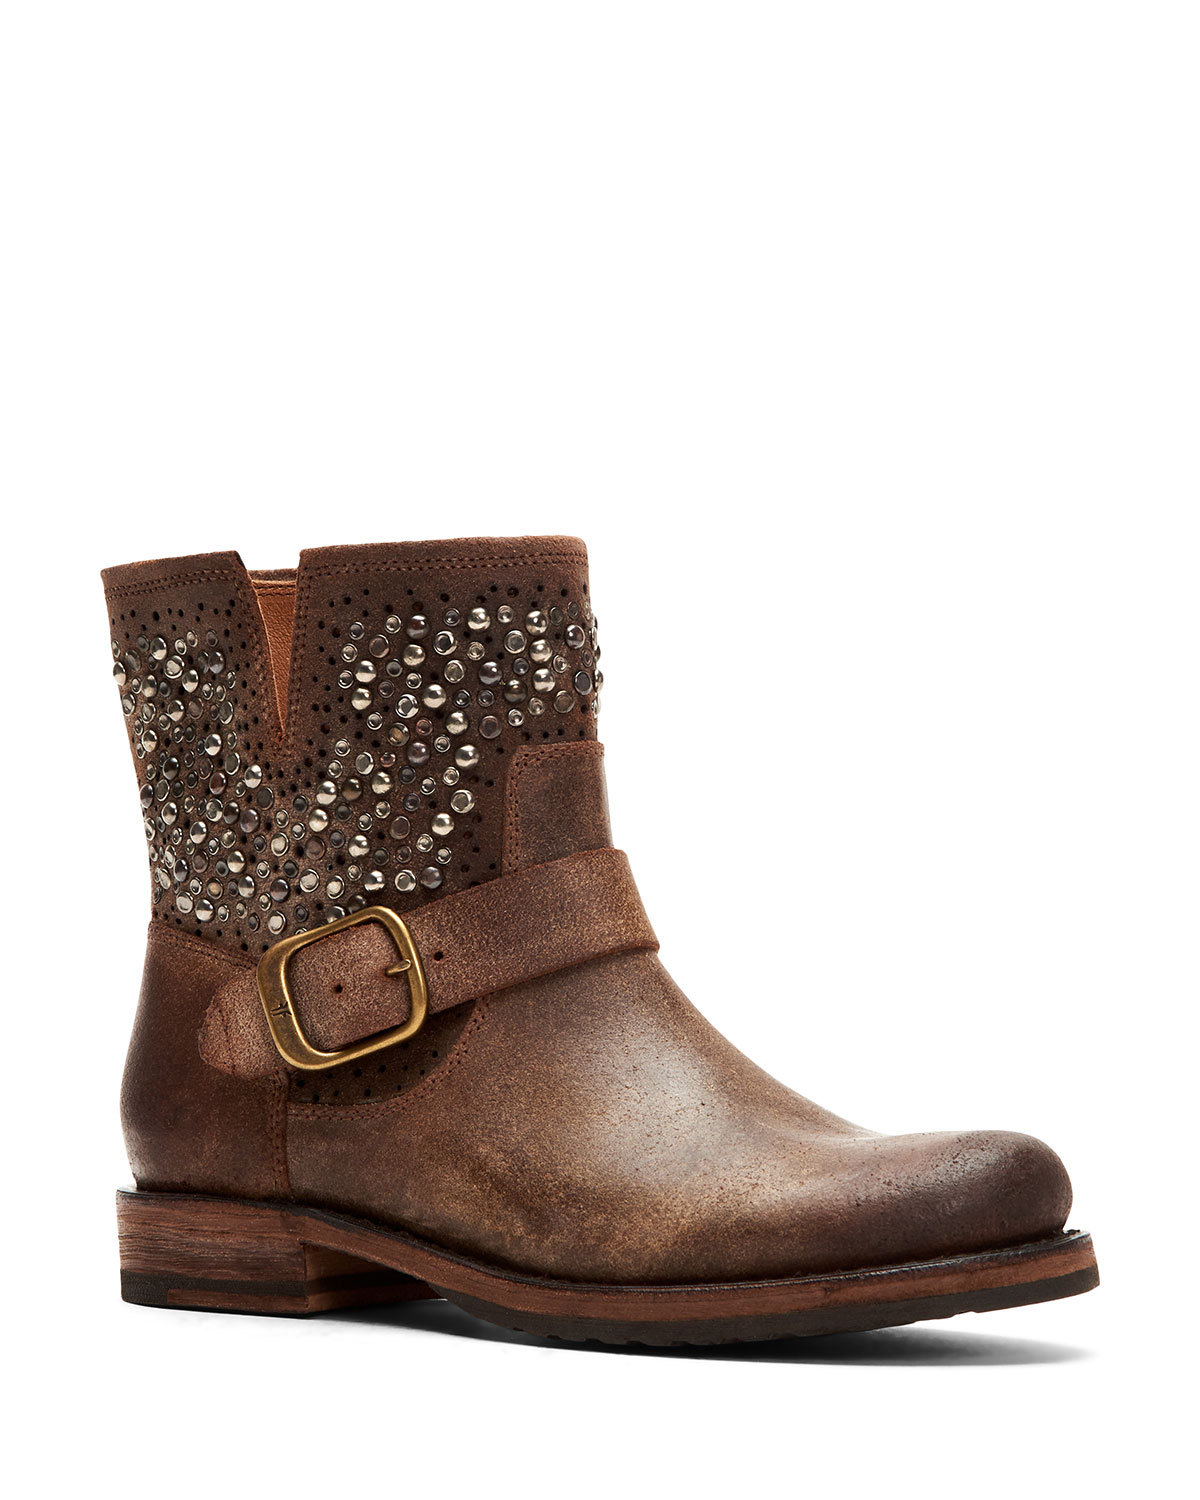 Veronica Beaded Rugged Leather Moto Booties